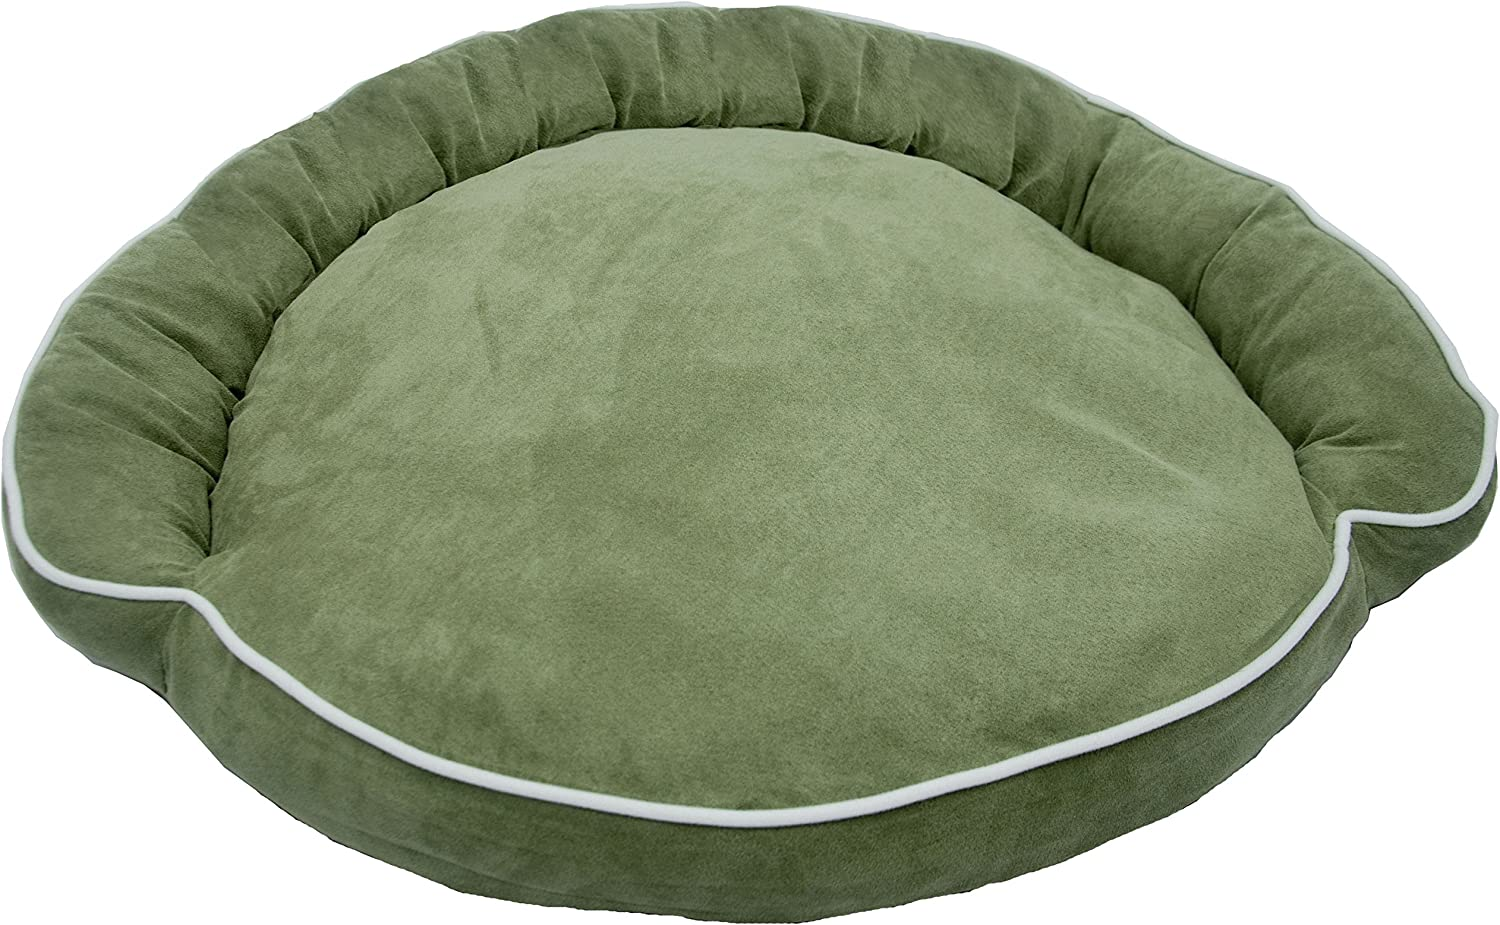 Iconic Pet Luxury Bolster Pet Bed